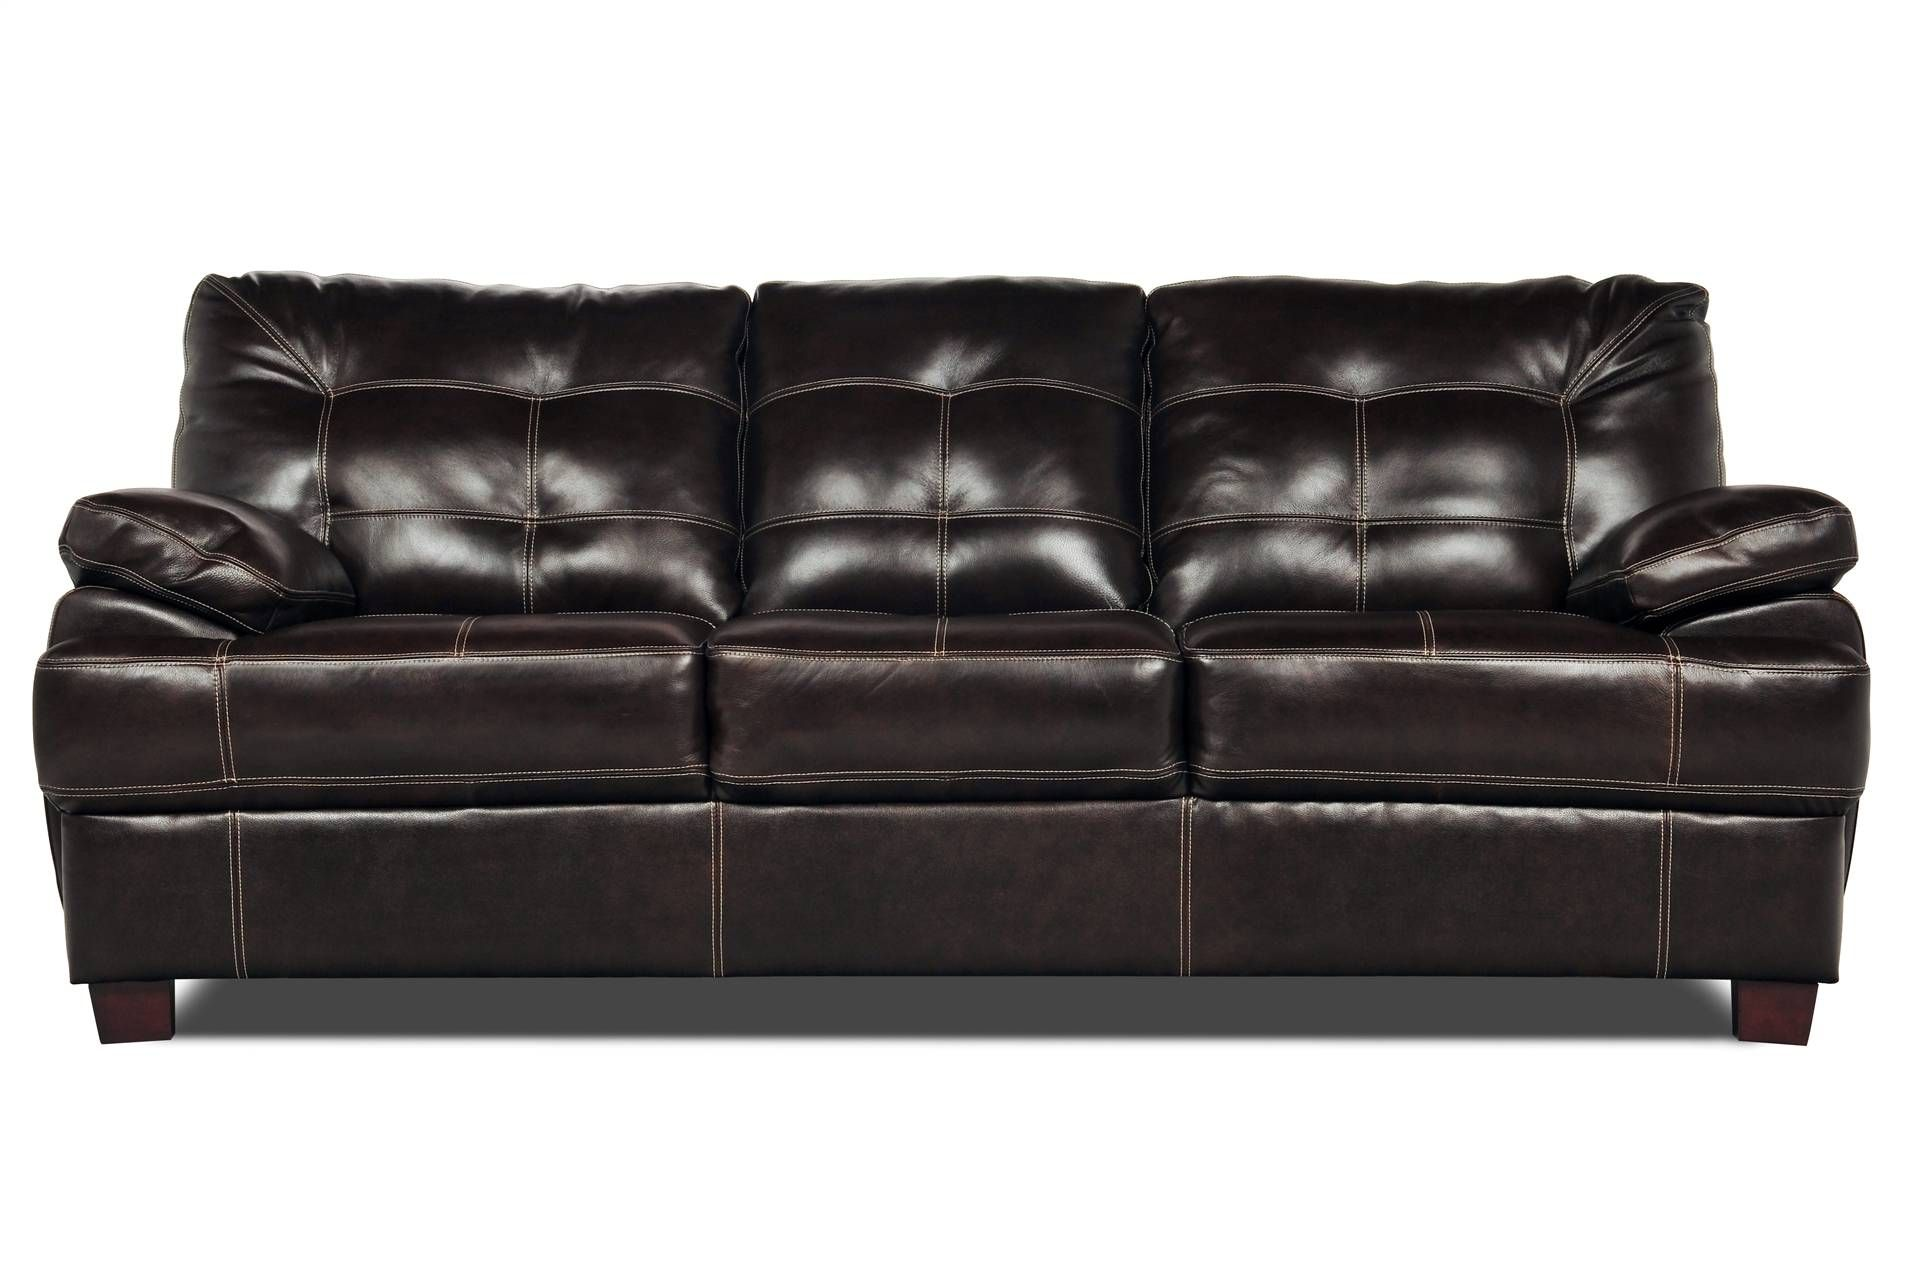 Cassia Sofa $995 @ Living Spaces